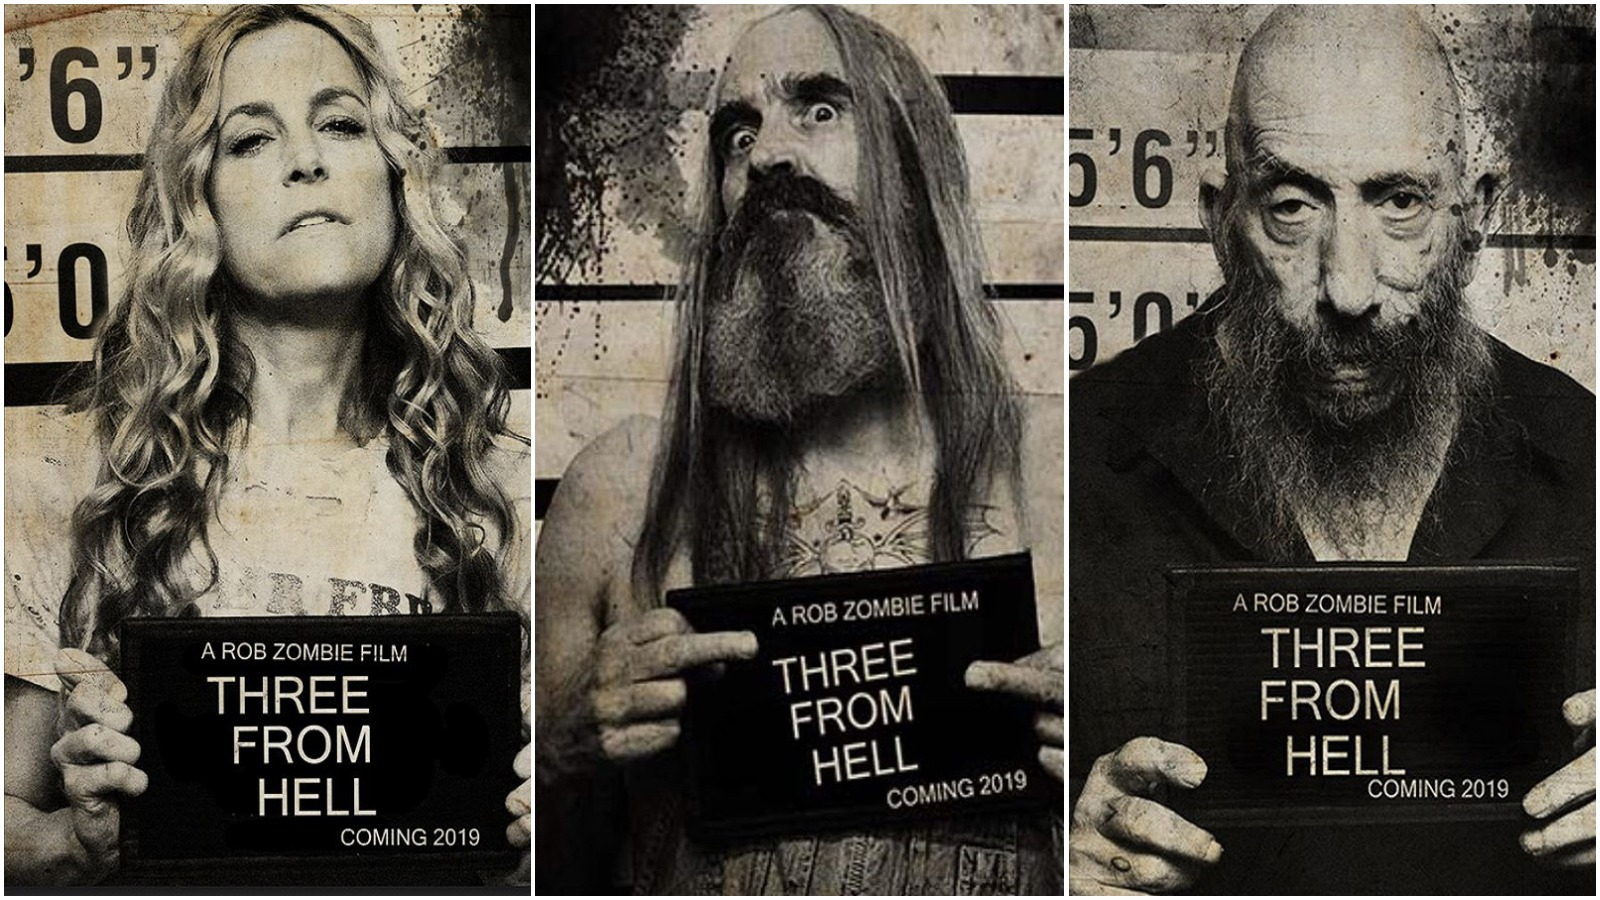 Rob Zombie's '3 From Hell': Hear 3 Chilling New Songs From Movie Soundtrack